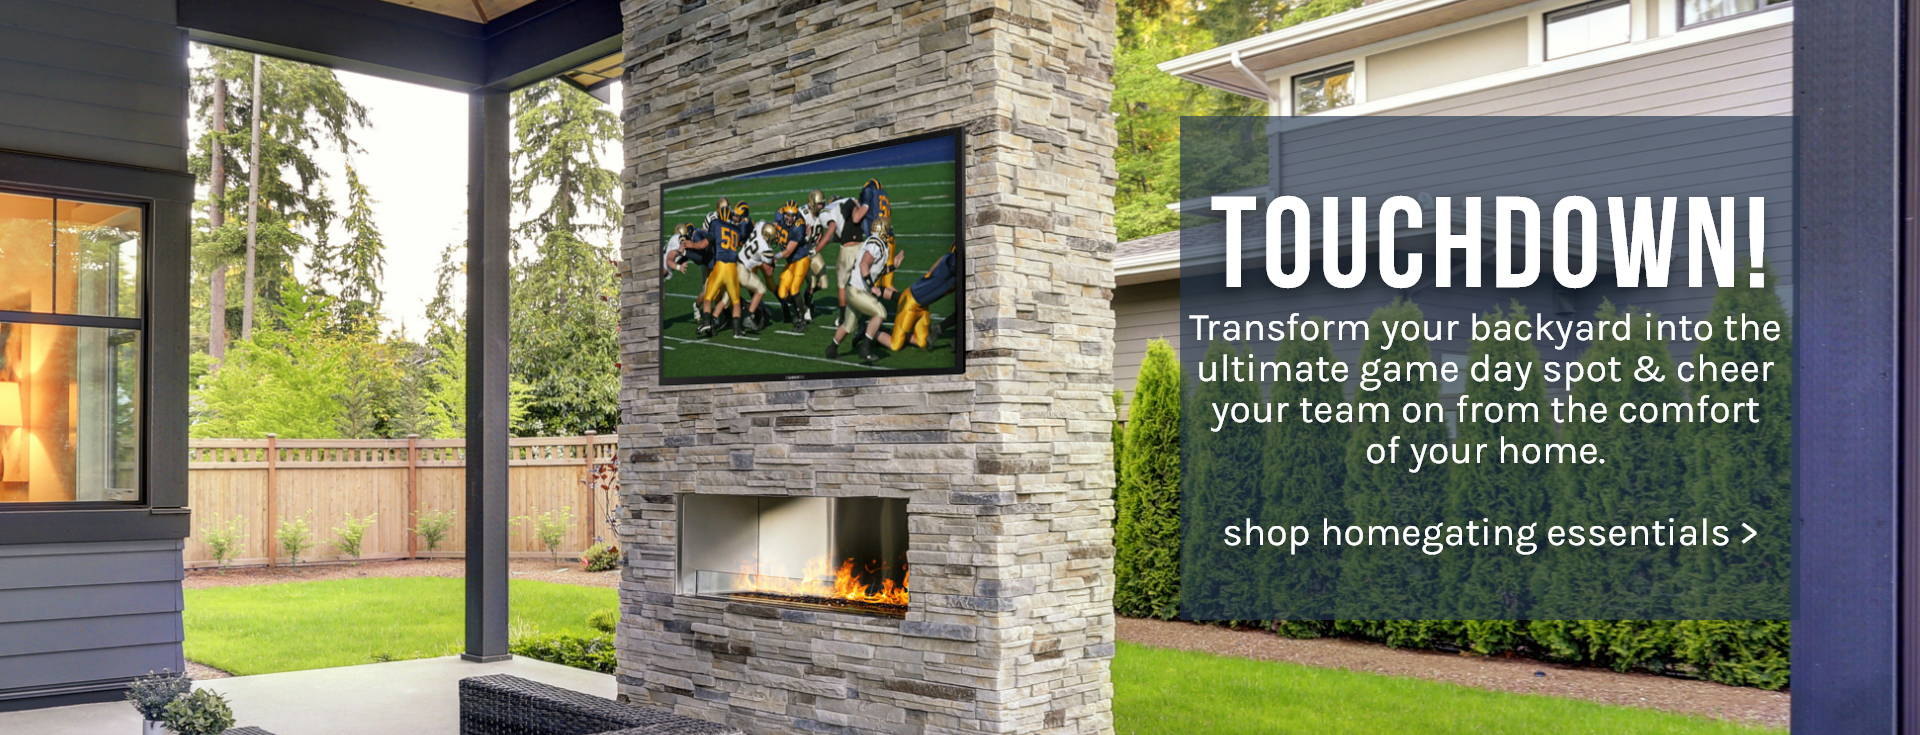 Touchdown! Transform your backyard into the ultimate game day spot & cheer your team on from the comfort of your home.